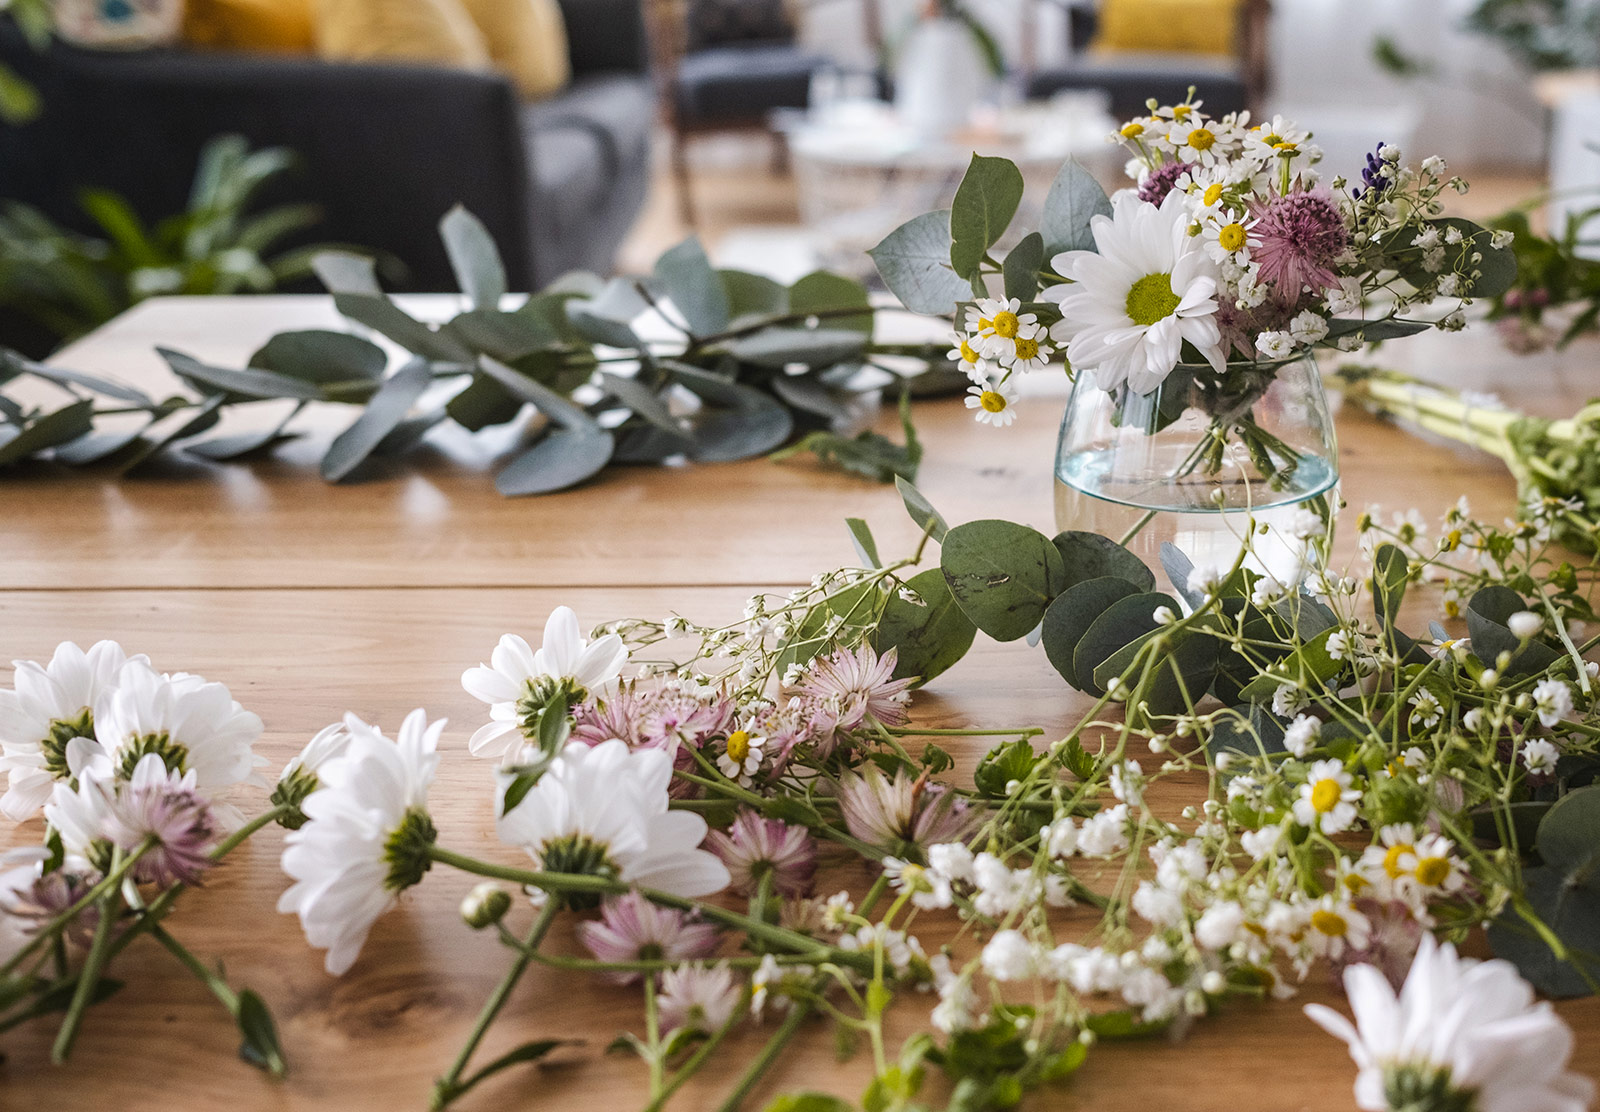 Flowering on a table